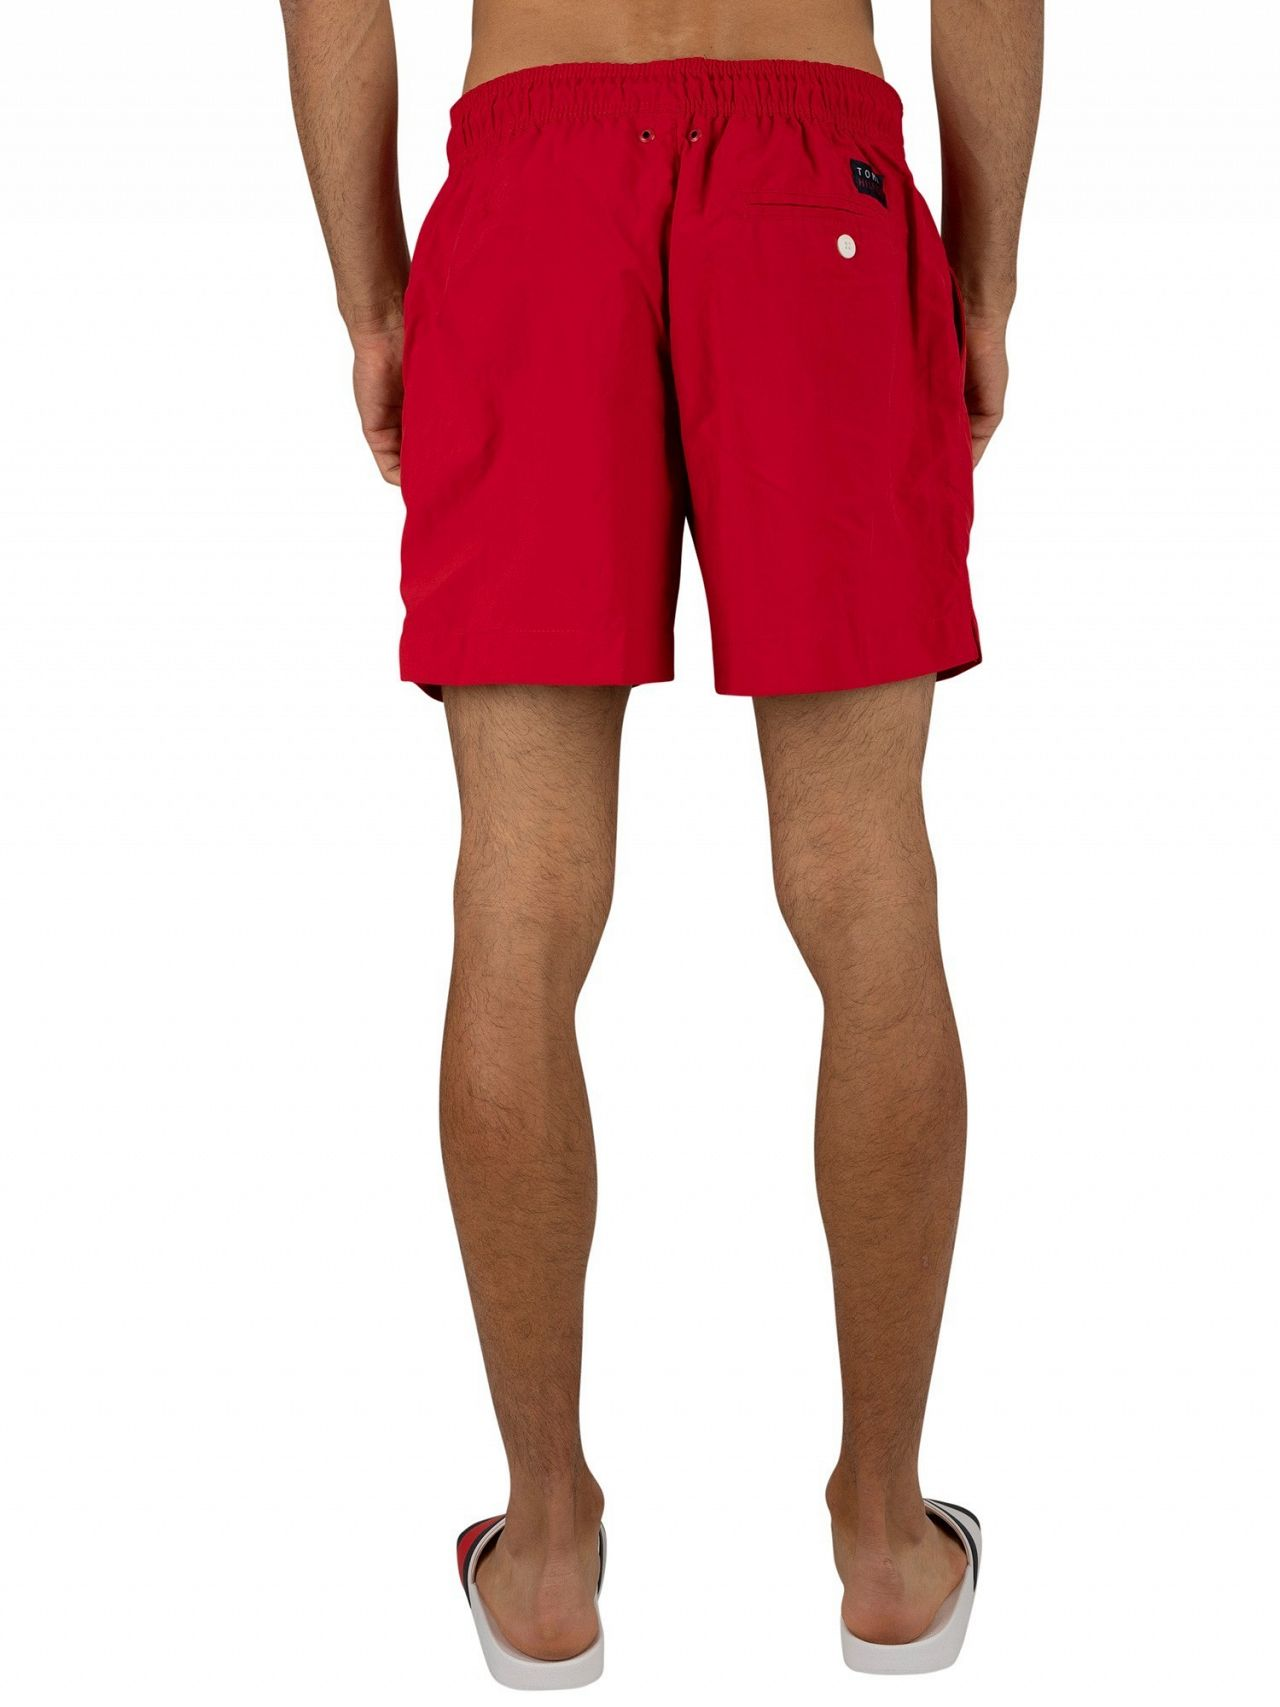 d9f8cf0b59 Tommy Hilfiger Tango Red Medium Drawstring Swim Shorts | Standout